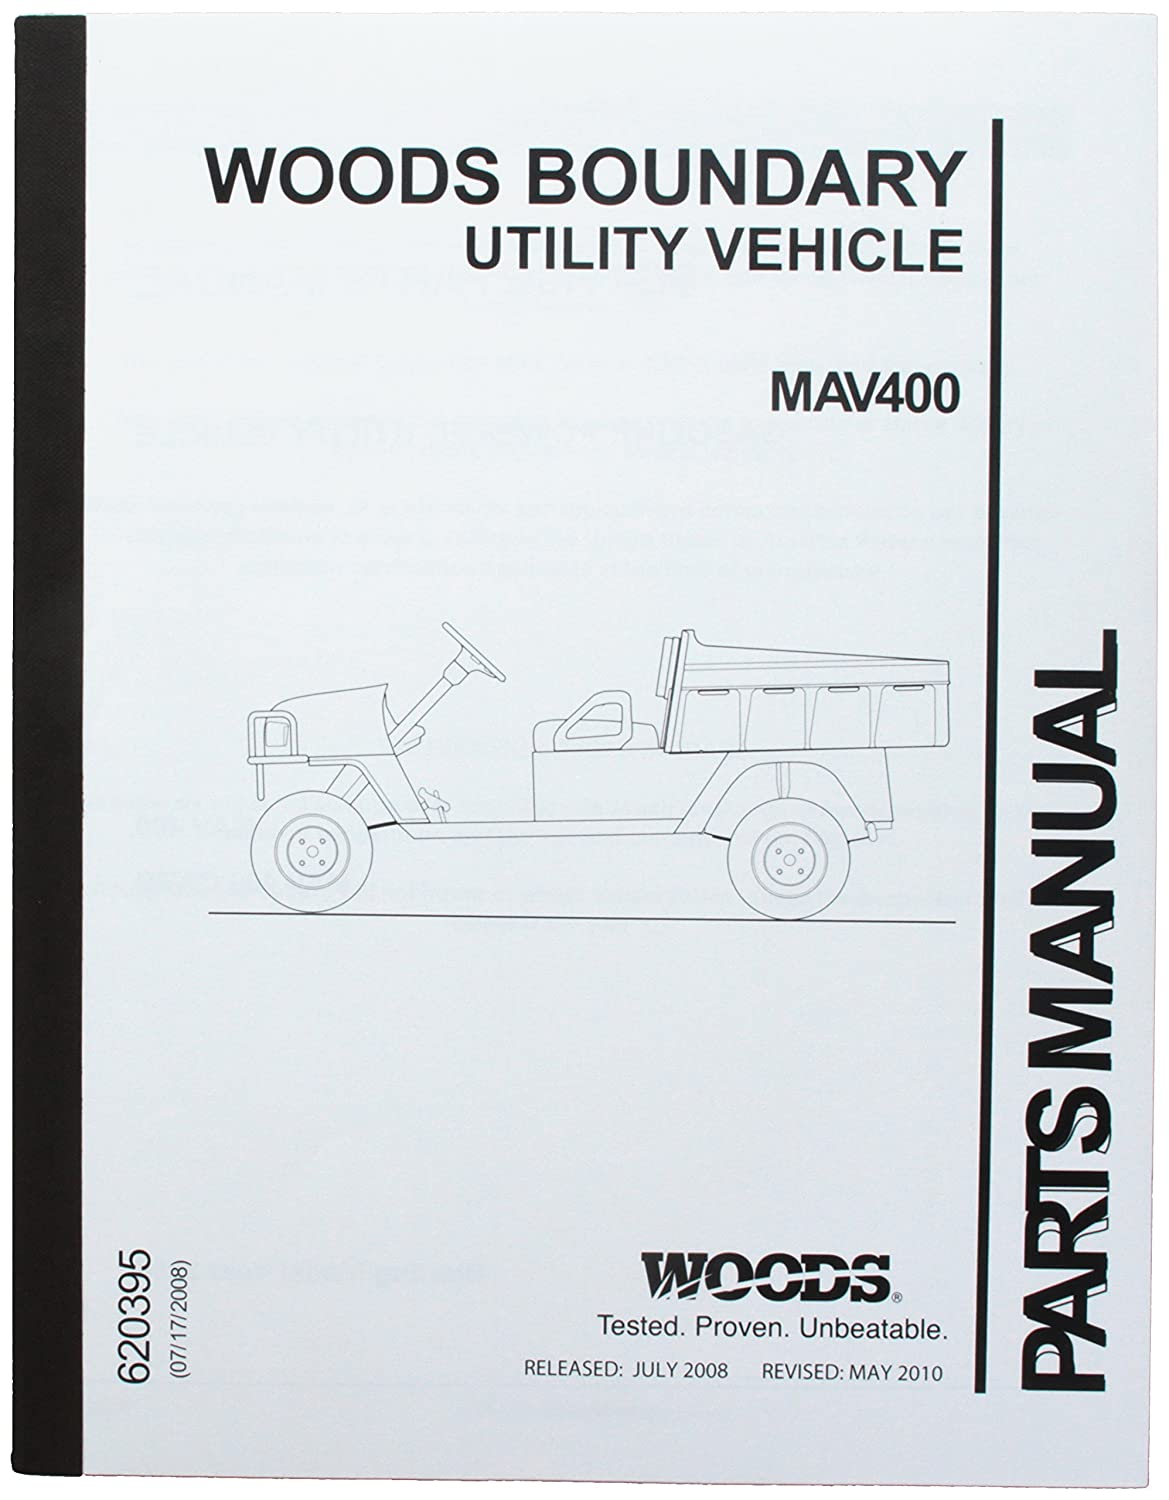 Ezgo 620395 2008 Service Parts Manual For Gas Woods Jeep Schematic Boundary Mav 400 Utility Vehicle Outdoor Decorative Fences Garden